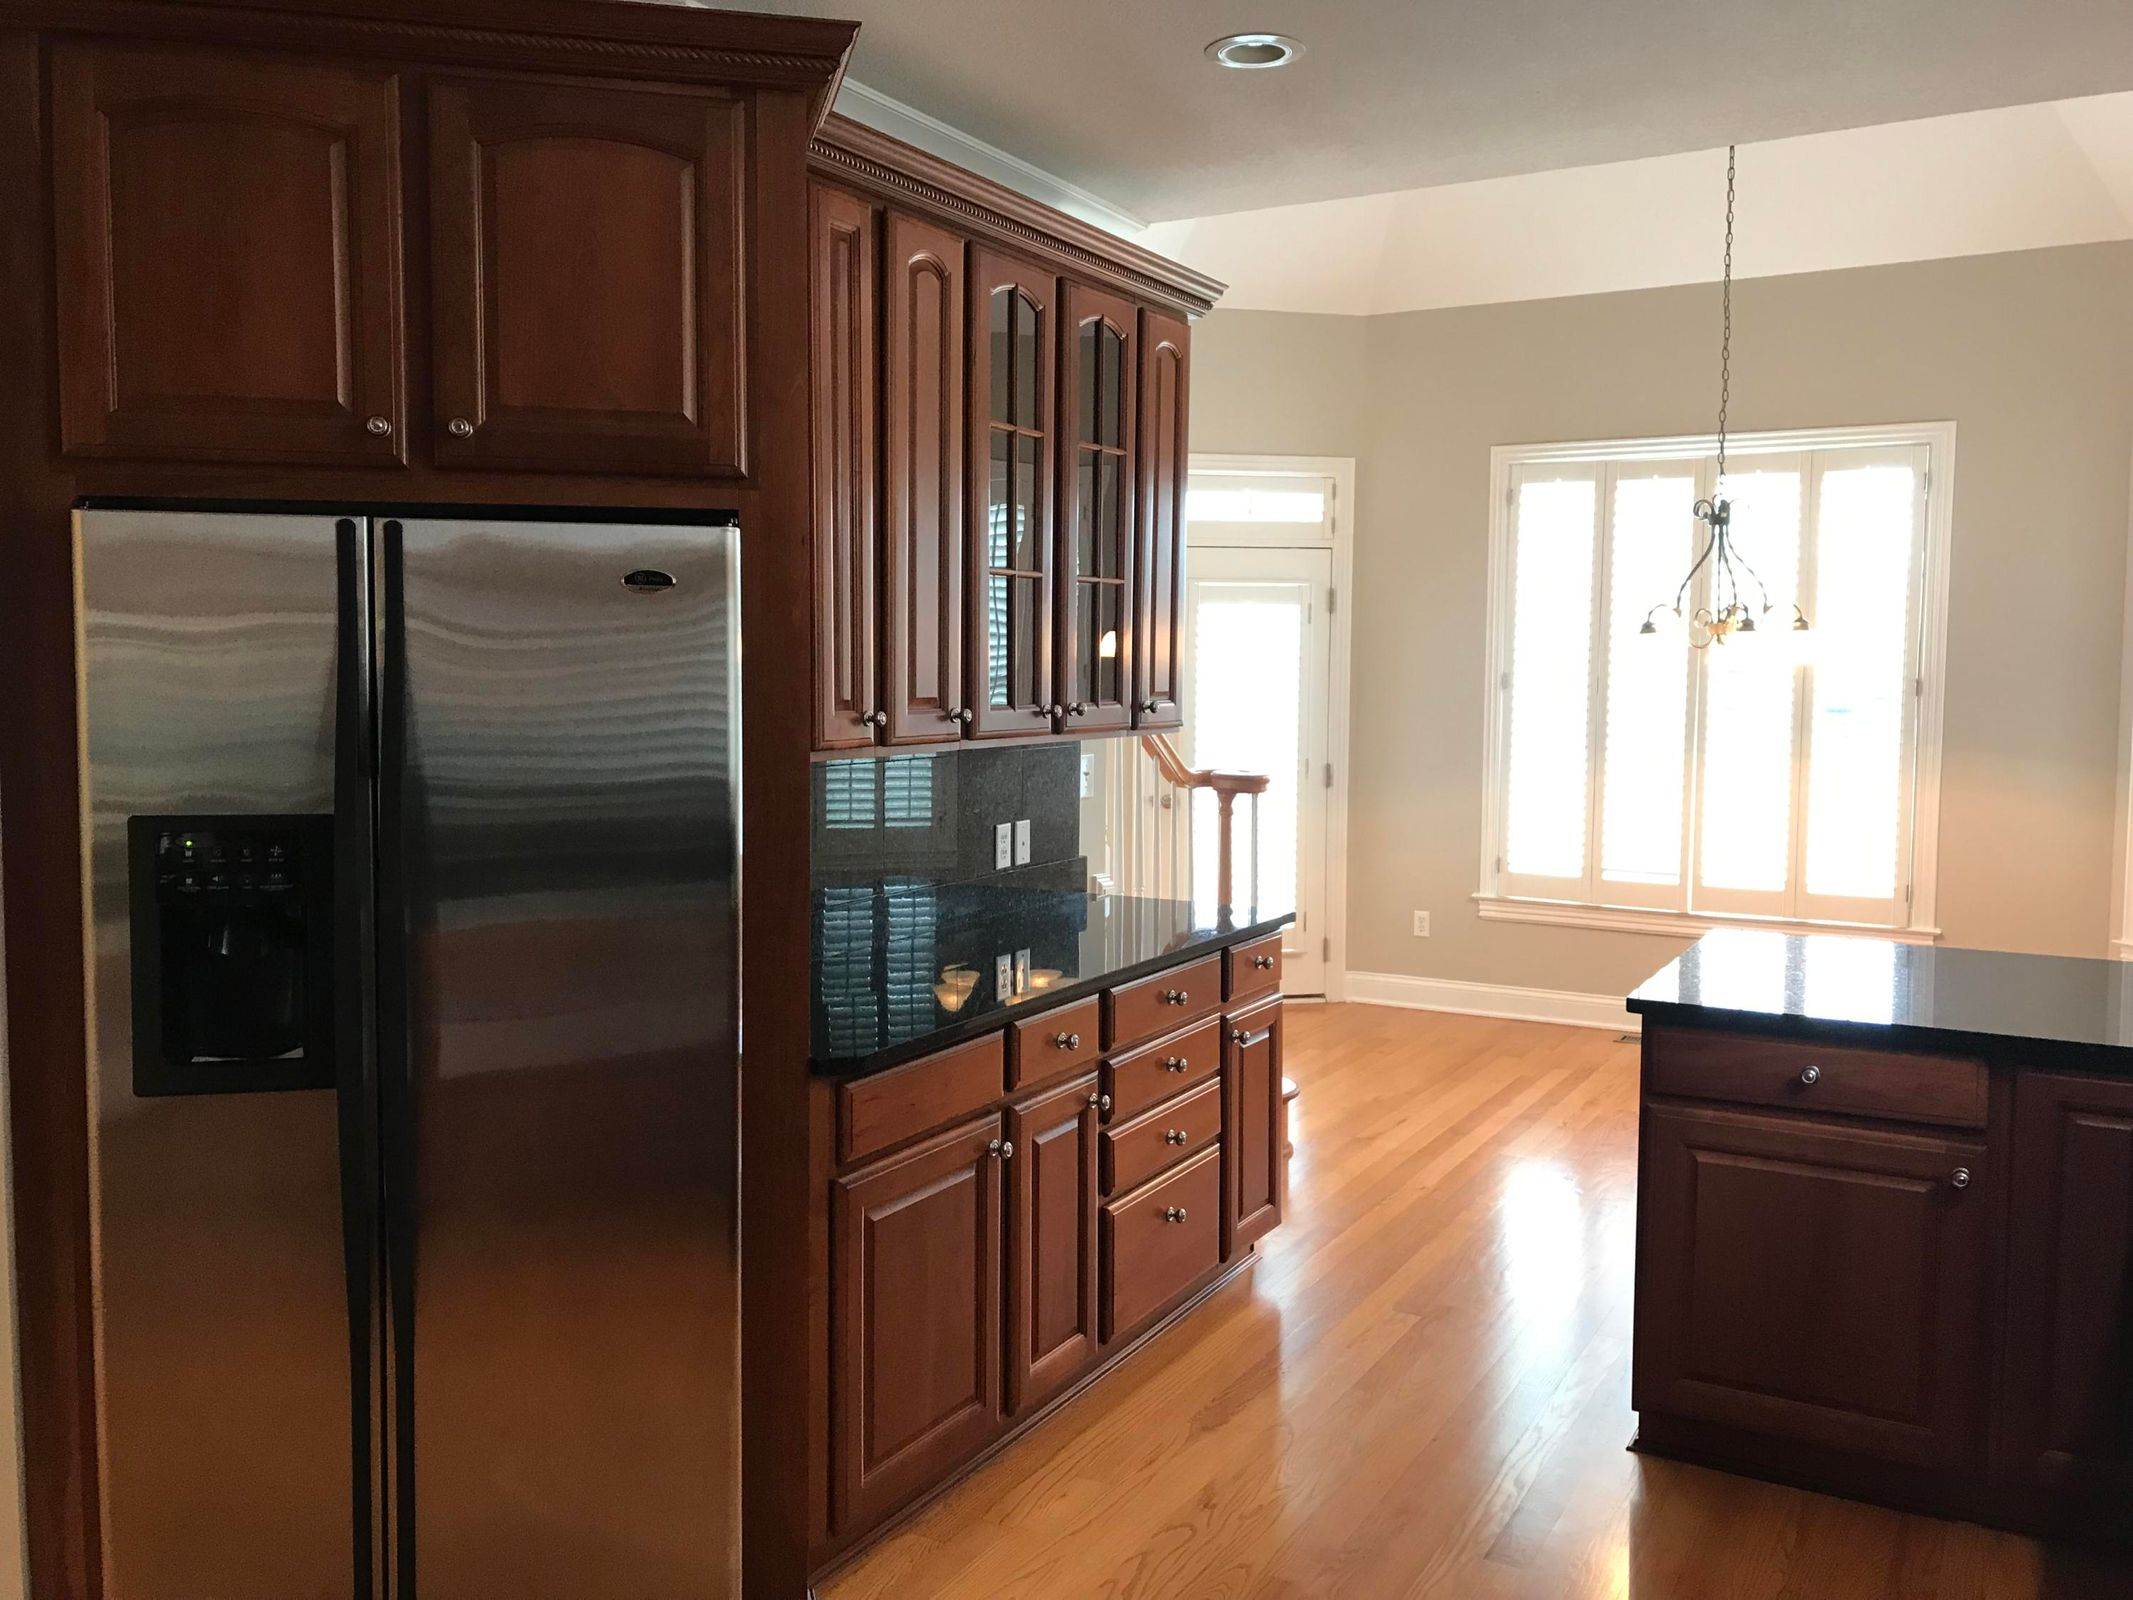 Main kitchen-stainless appliances